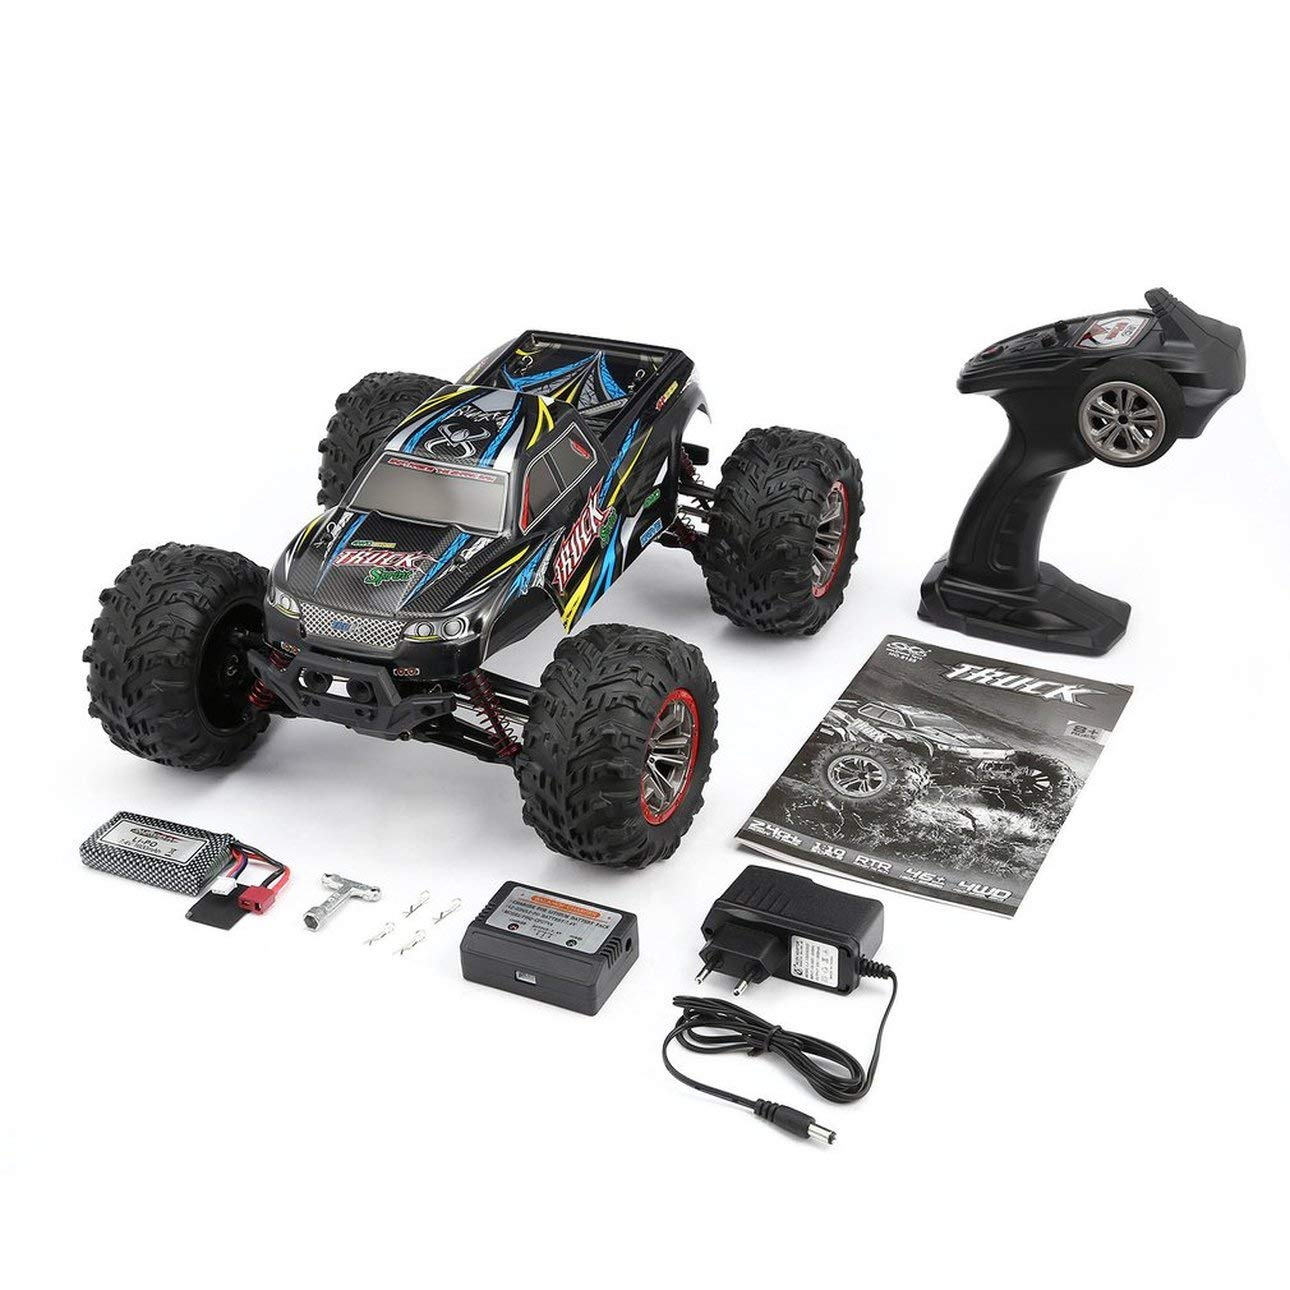 Liobaba 9125 4WD 1/10 High Speed 46km/h Electric Supersonic Truck Off-Road Vehicle Buggy RC Racing Car Electronic Toy RTR